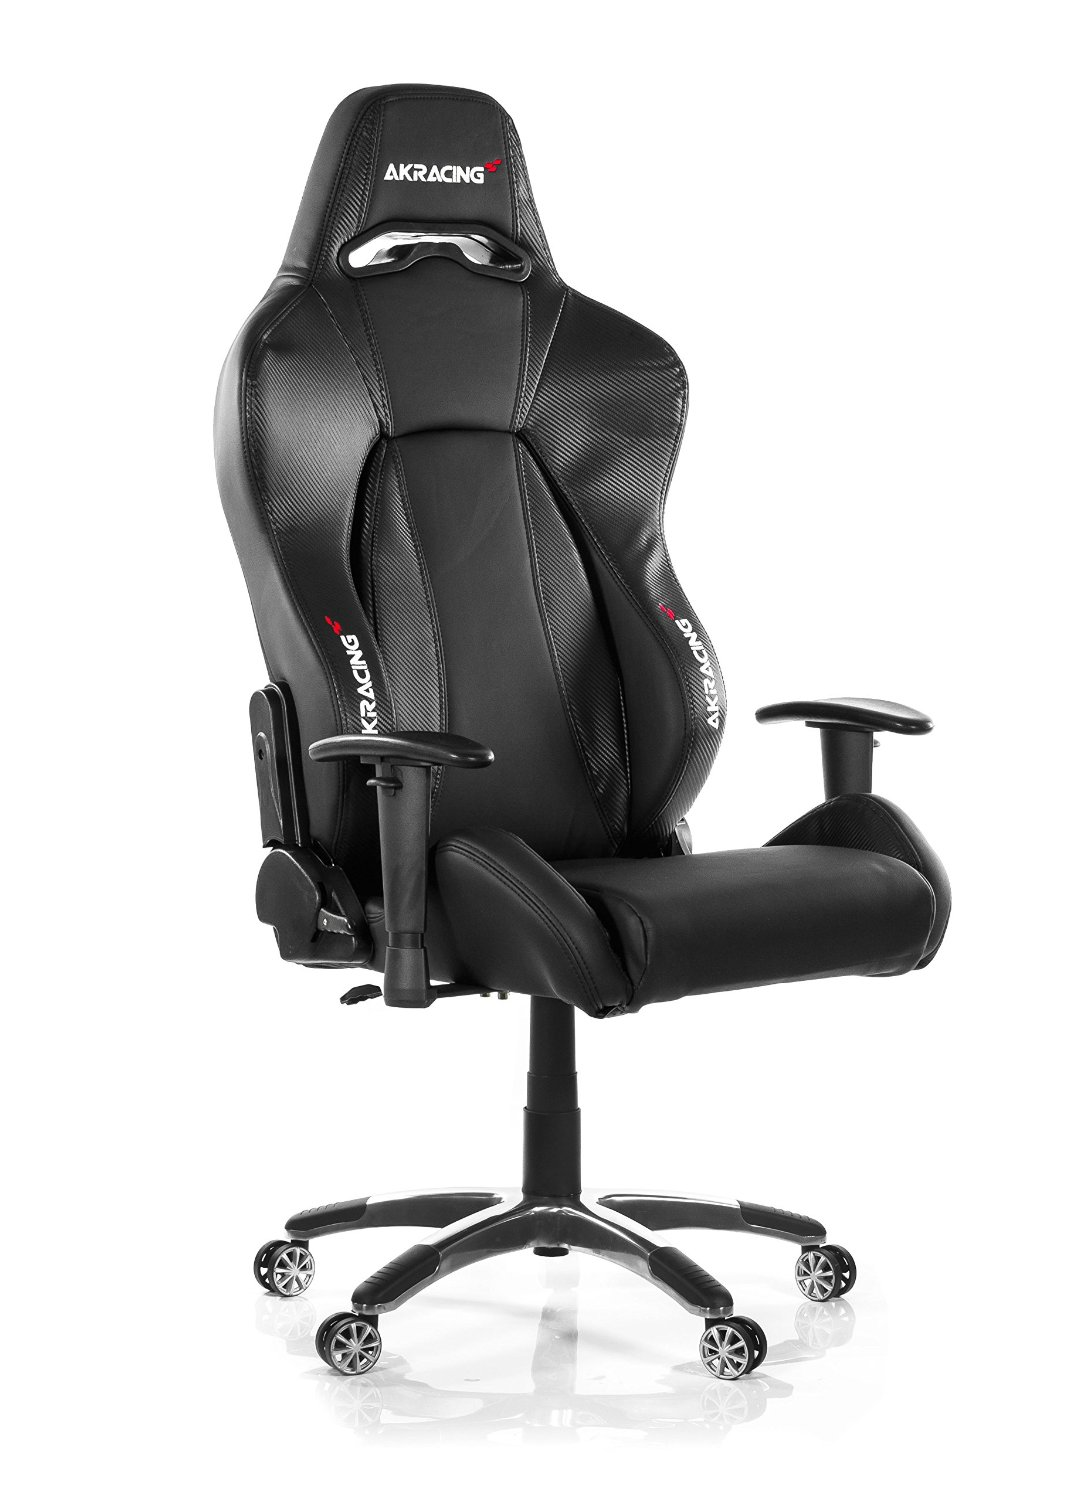 Super comfortable gaming chair - Akracing Ak 7002 Gaming Chair For Pc